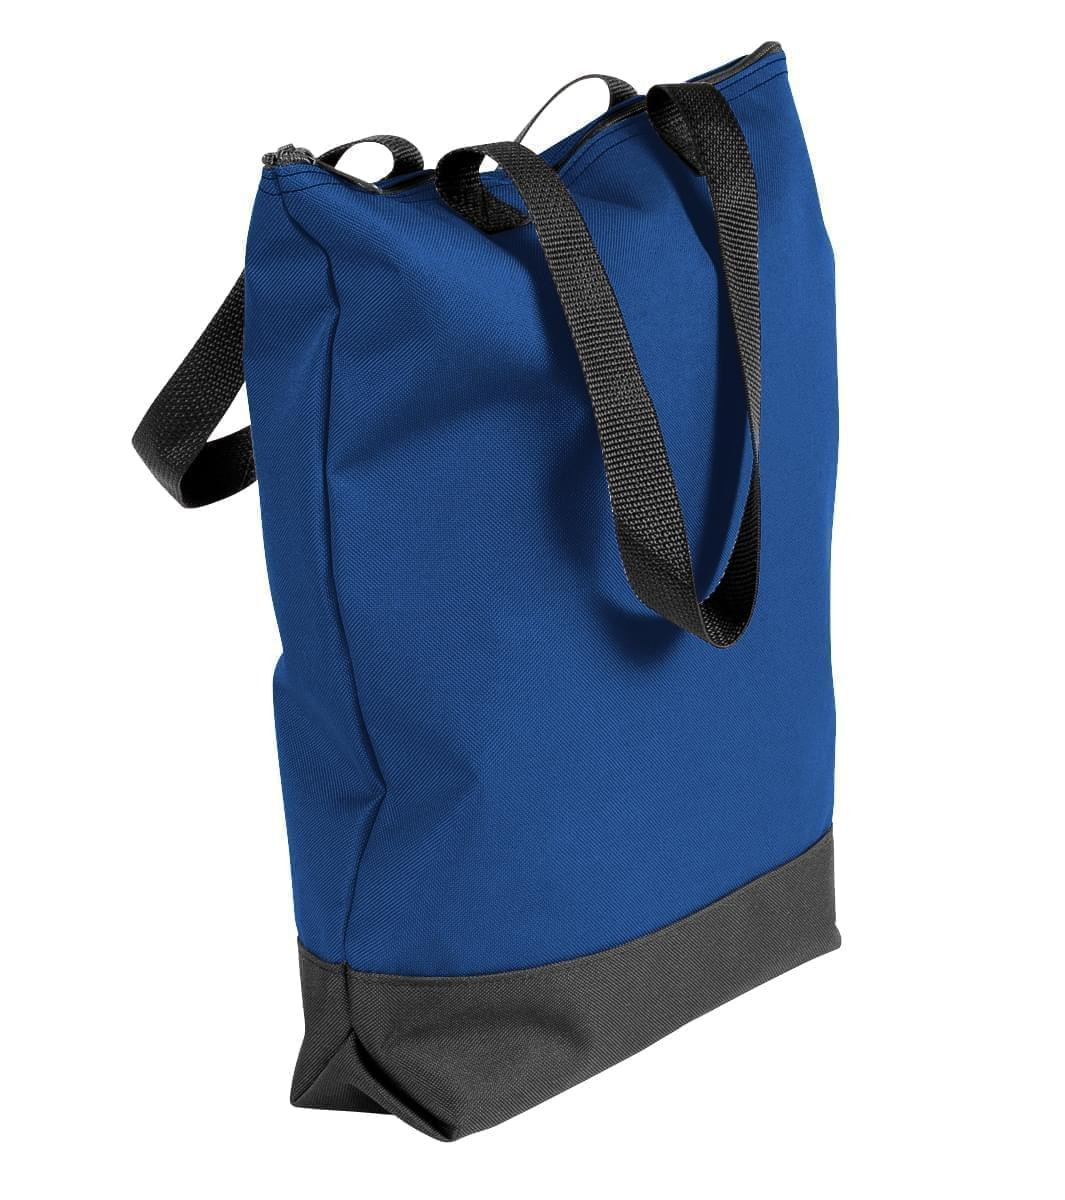 USA Made Canvas Portfolio Tote Bags, Royal Blue-Black, 1AAMX1UAFR